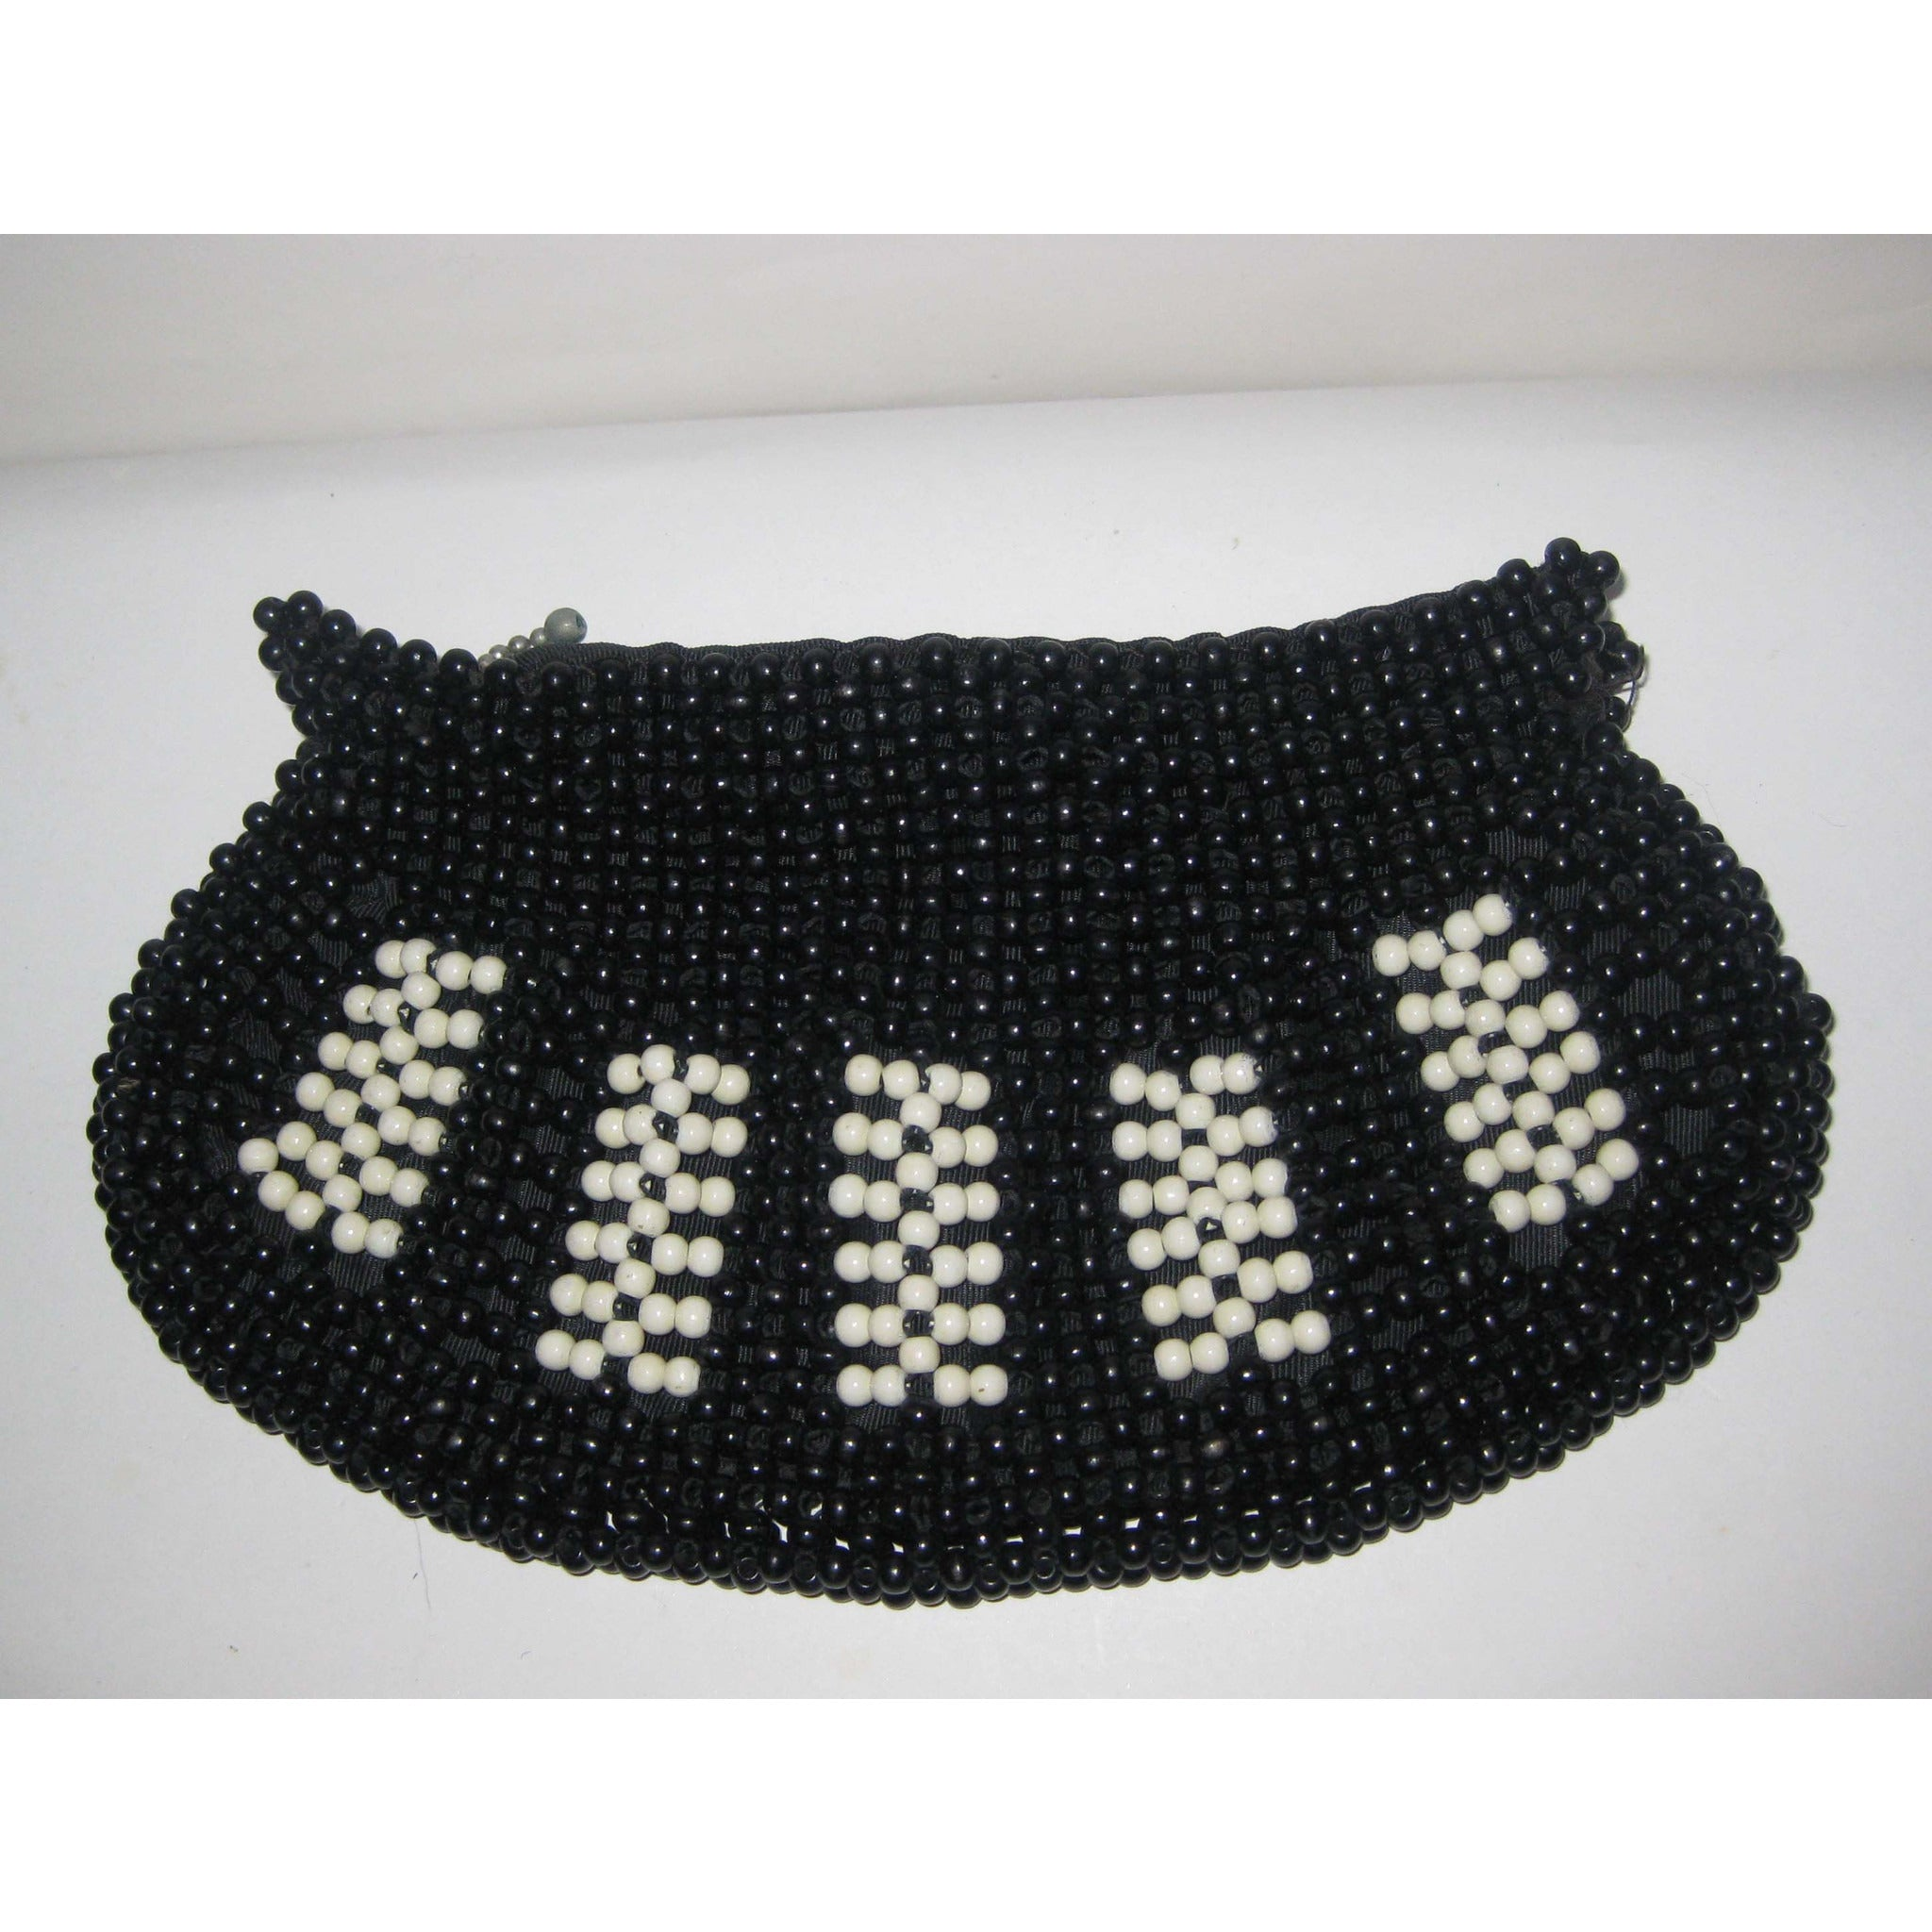 Vintage Black & White Beaded Purse